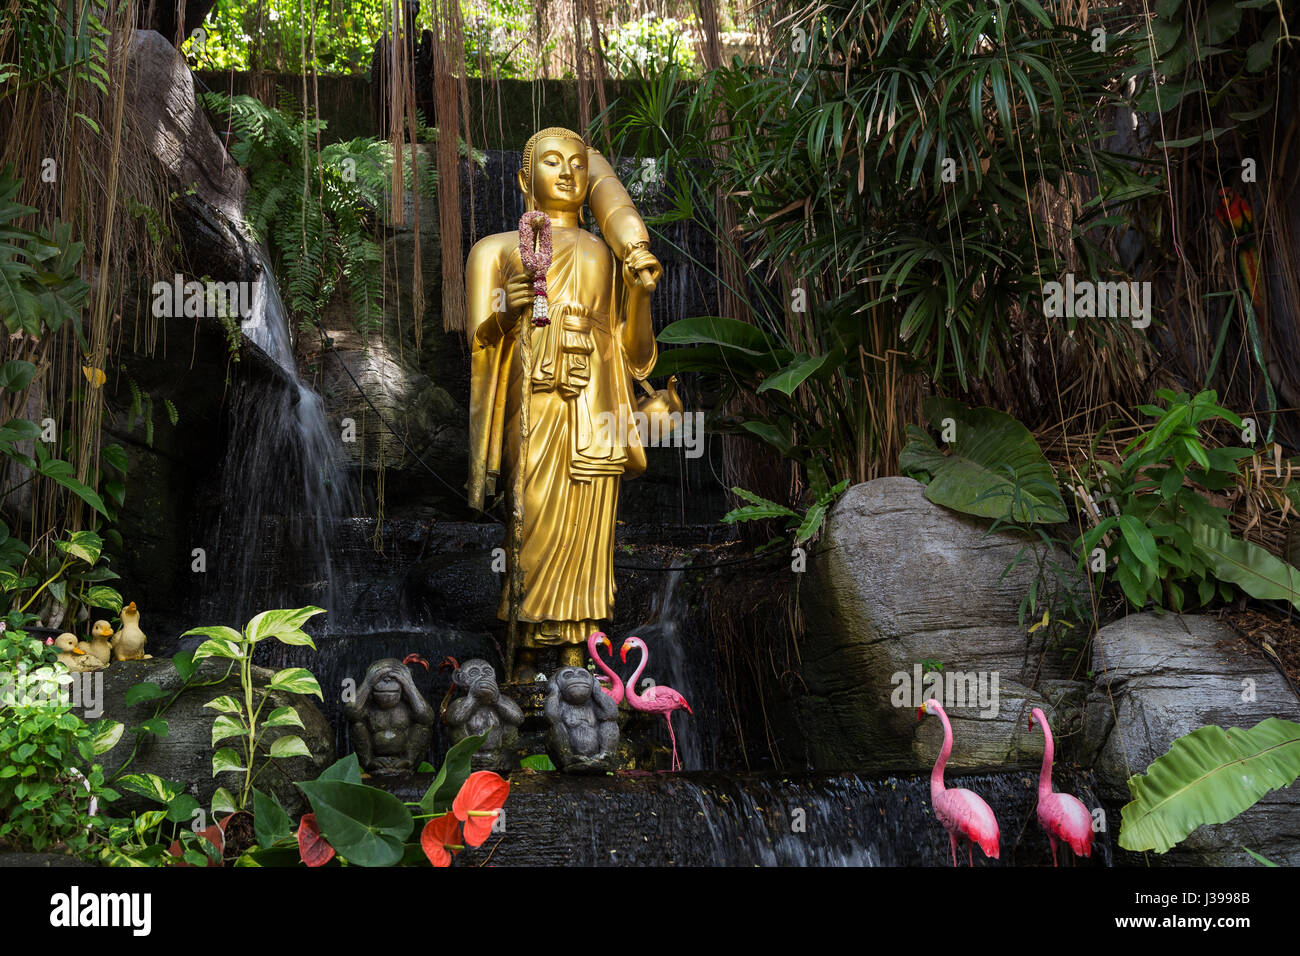 Golden Buddha statue and small artificial waterfall at the Golden Mount at Wat Saket in Bangkok, Thailand. - Stock Image